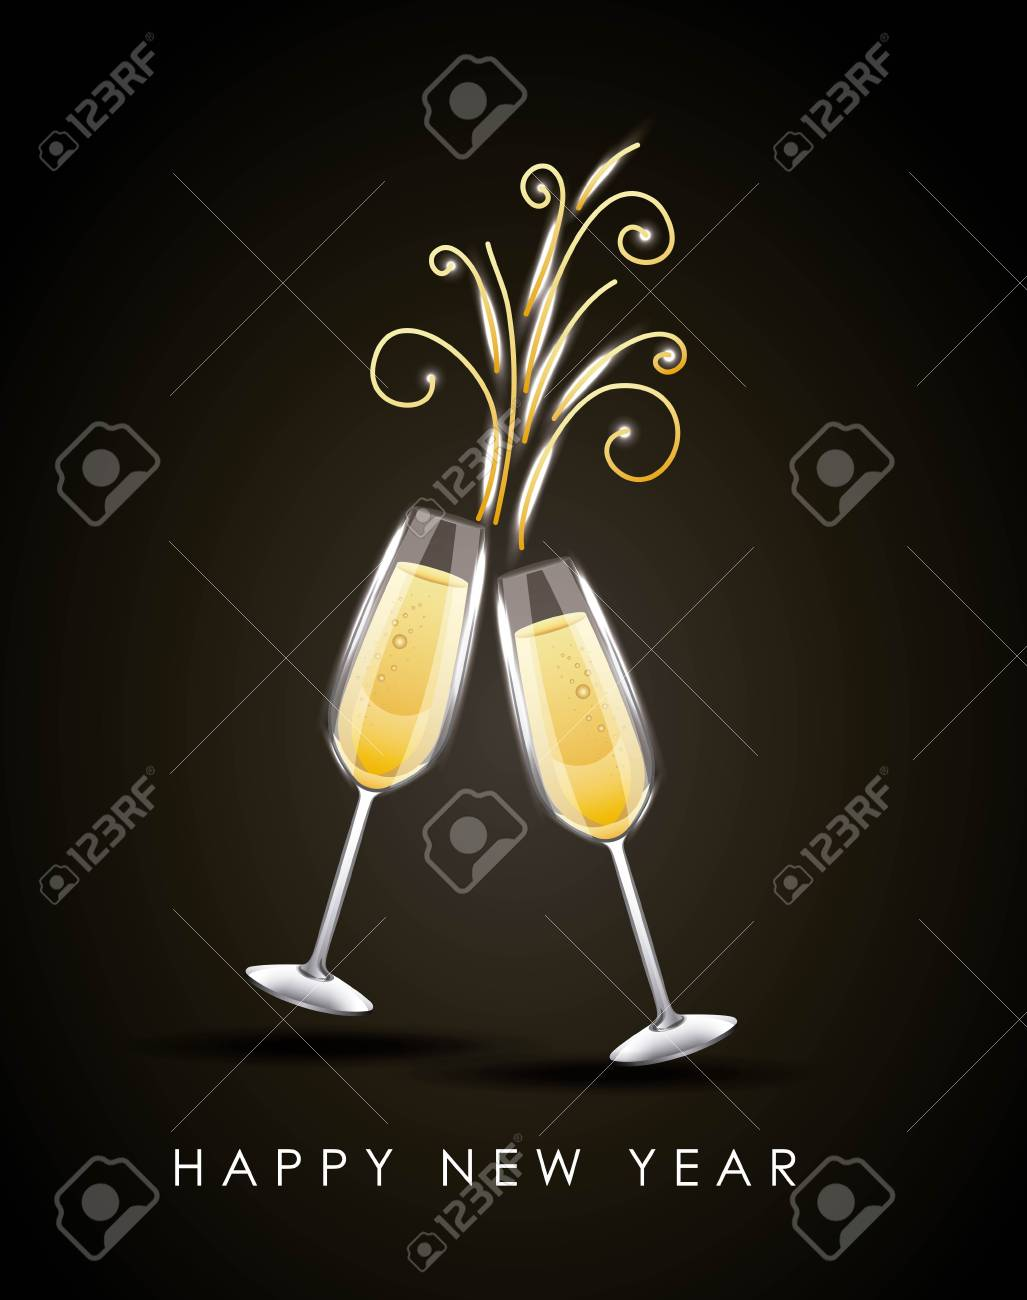 happy new year pair of champagne glass cheers drink celebration vector illustration stock vector 89982323